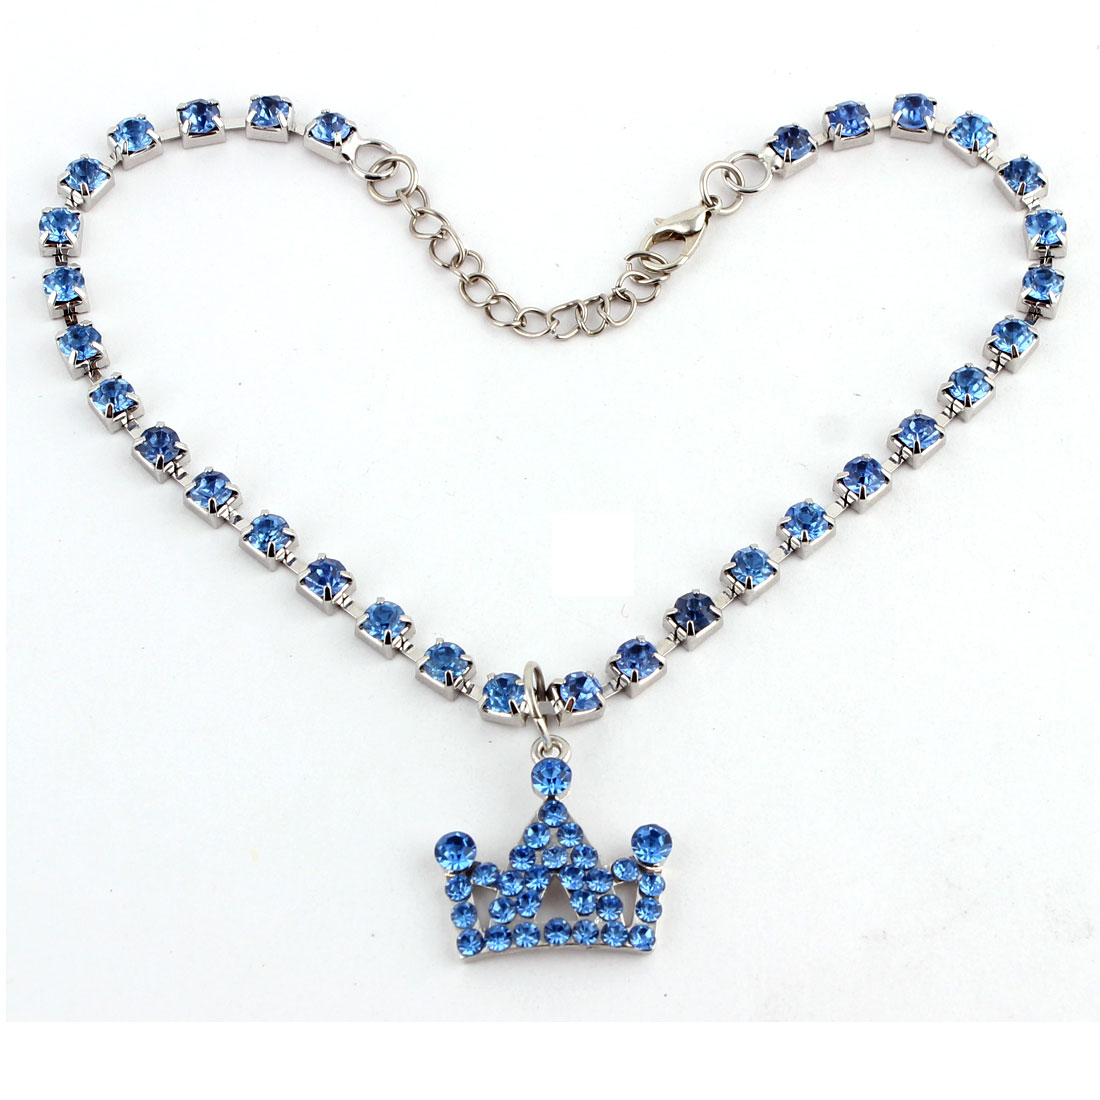 Dog Metal Beads Linked Rhinestone Inlaid Crown Shaped Pendant Decor Necklace Blue